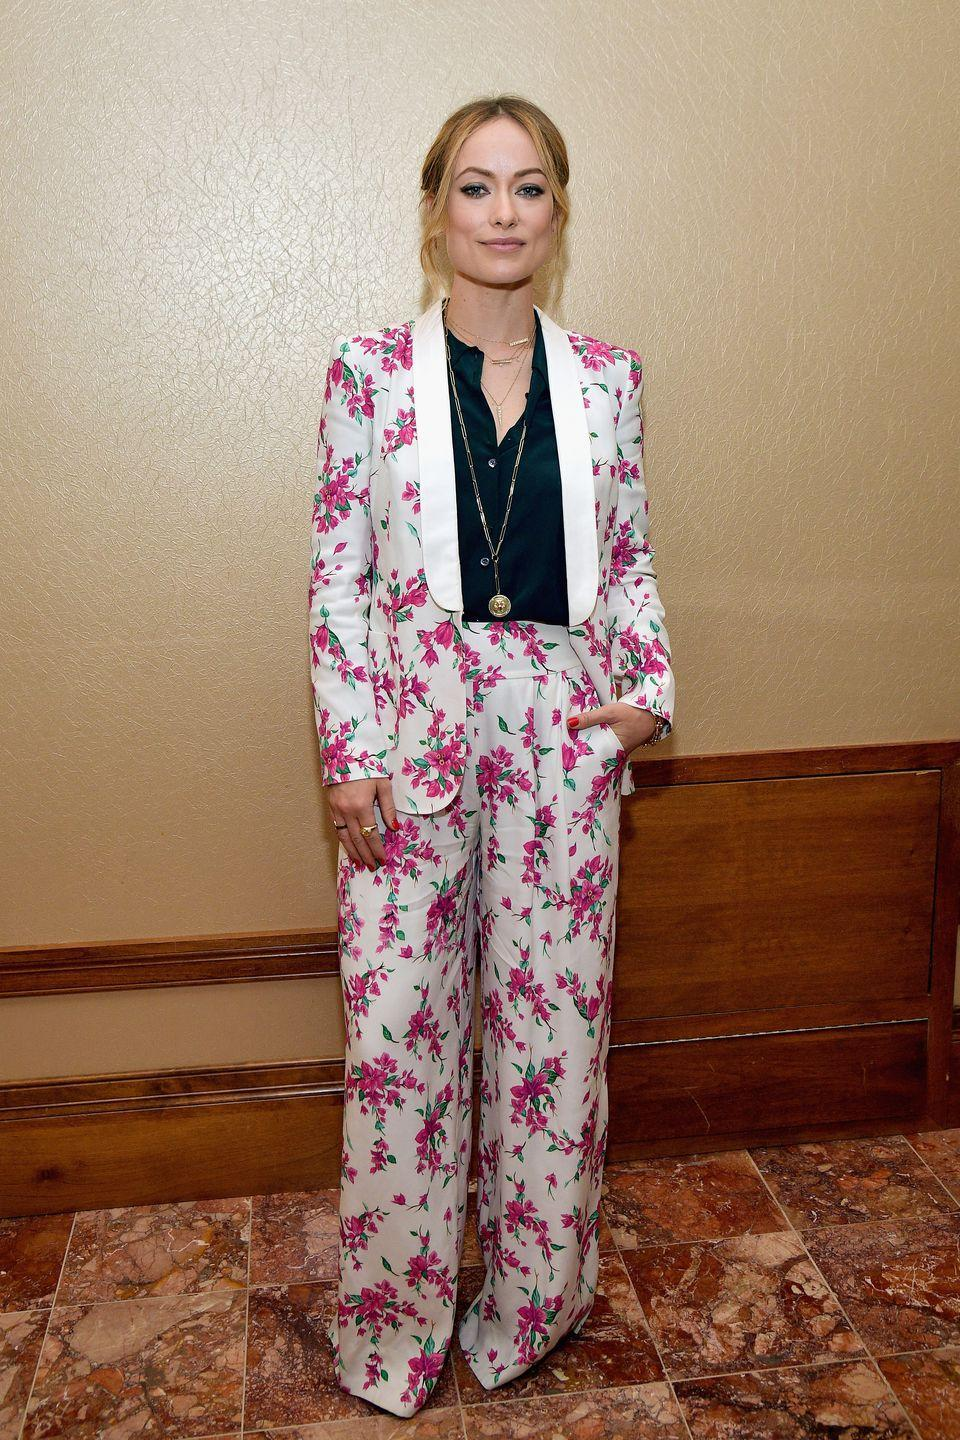 <p>A floral Rachel Zoe pink and white suit teamed with a black shirt was the look du jour at the star-studded event. <br></p>